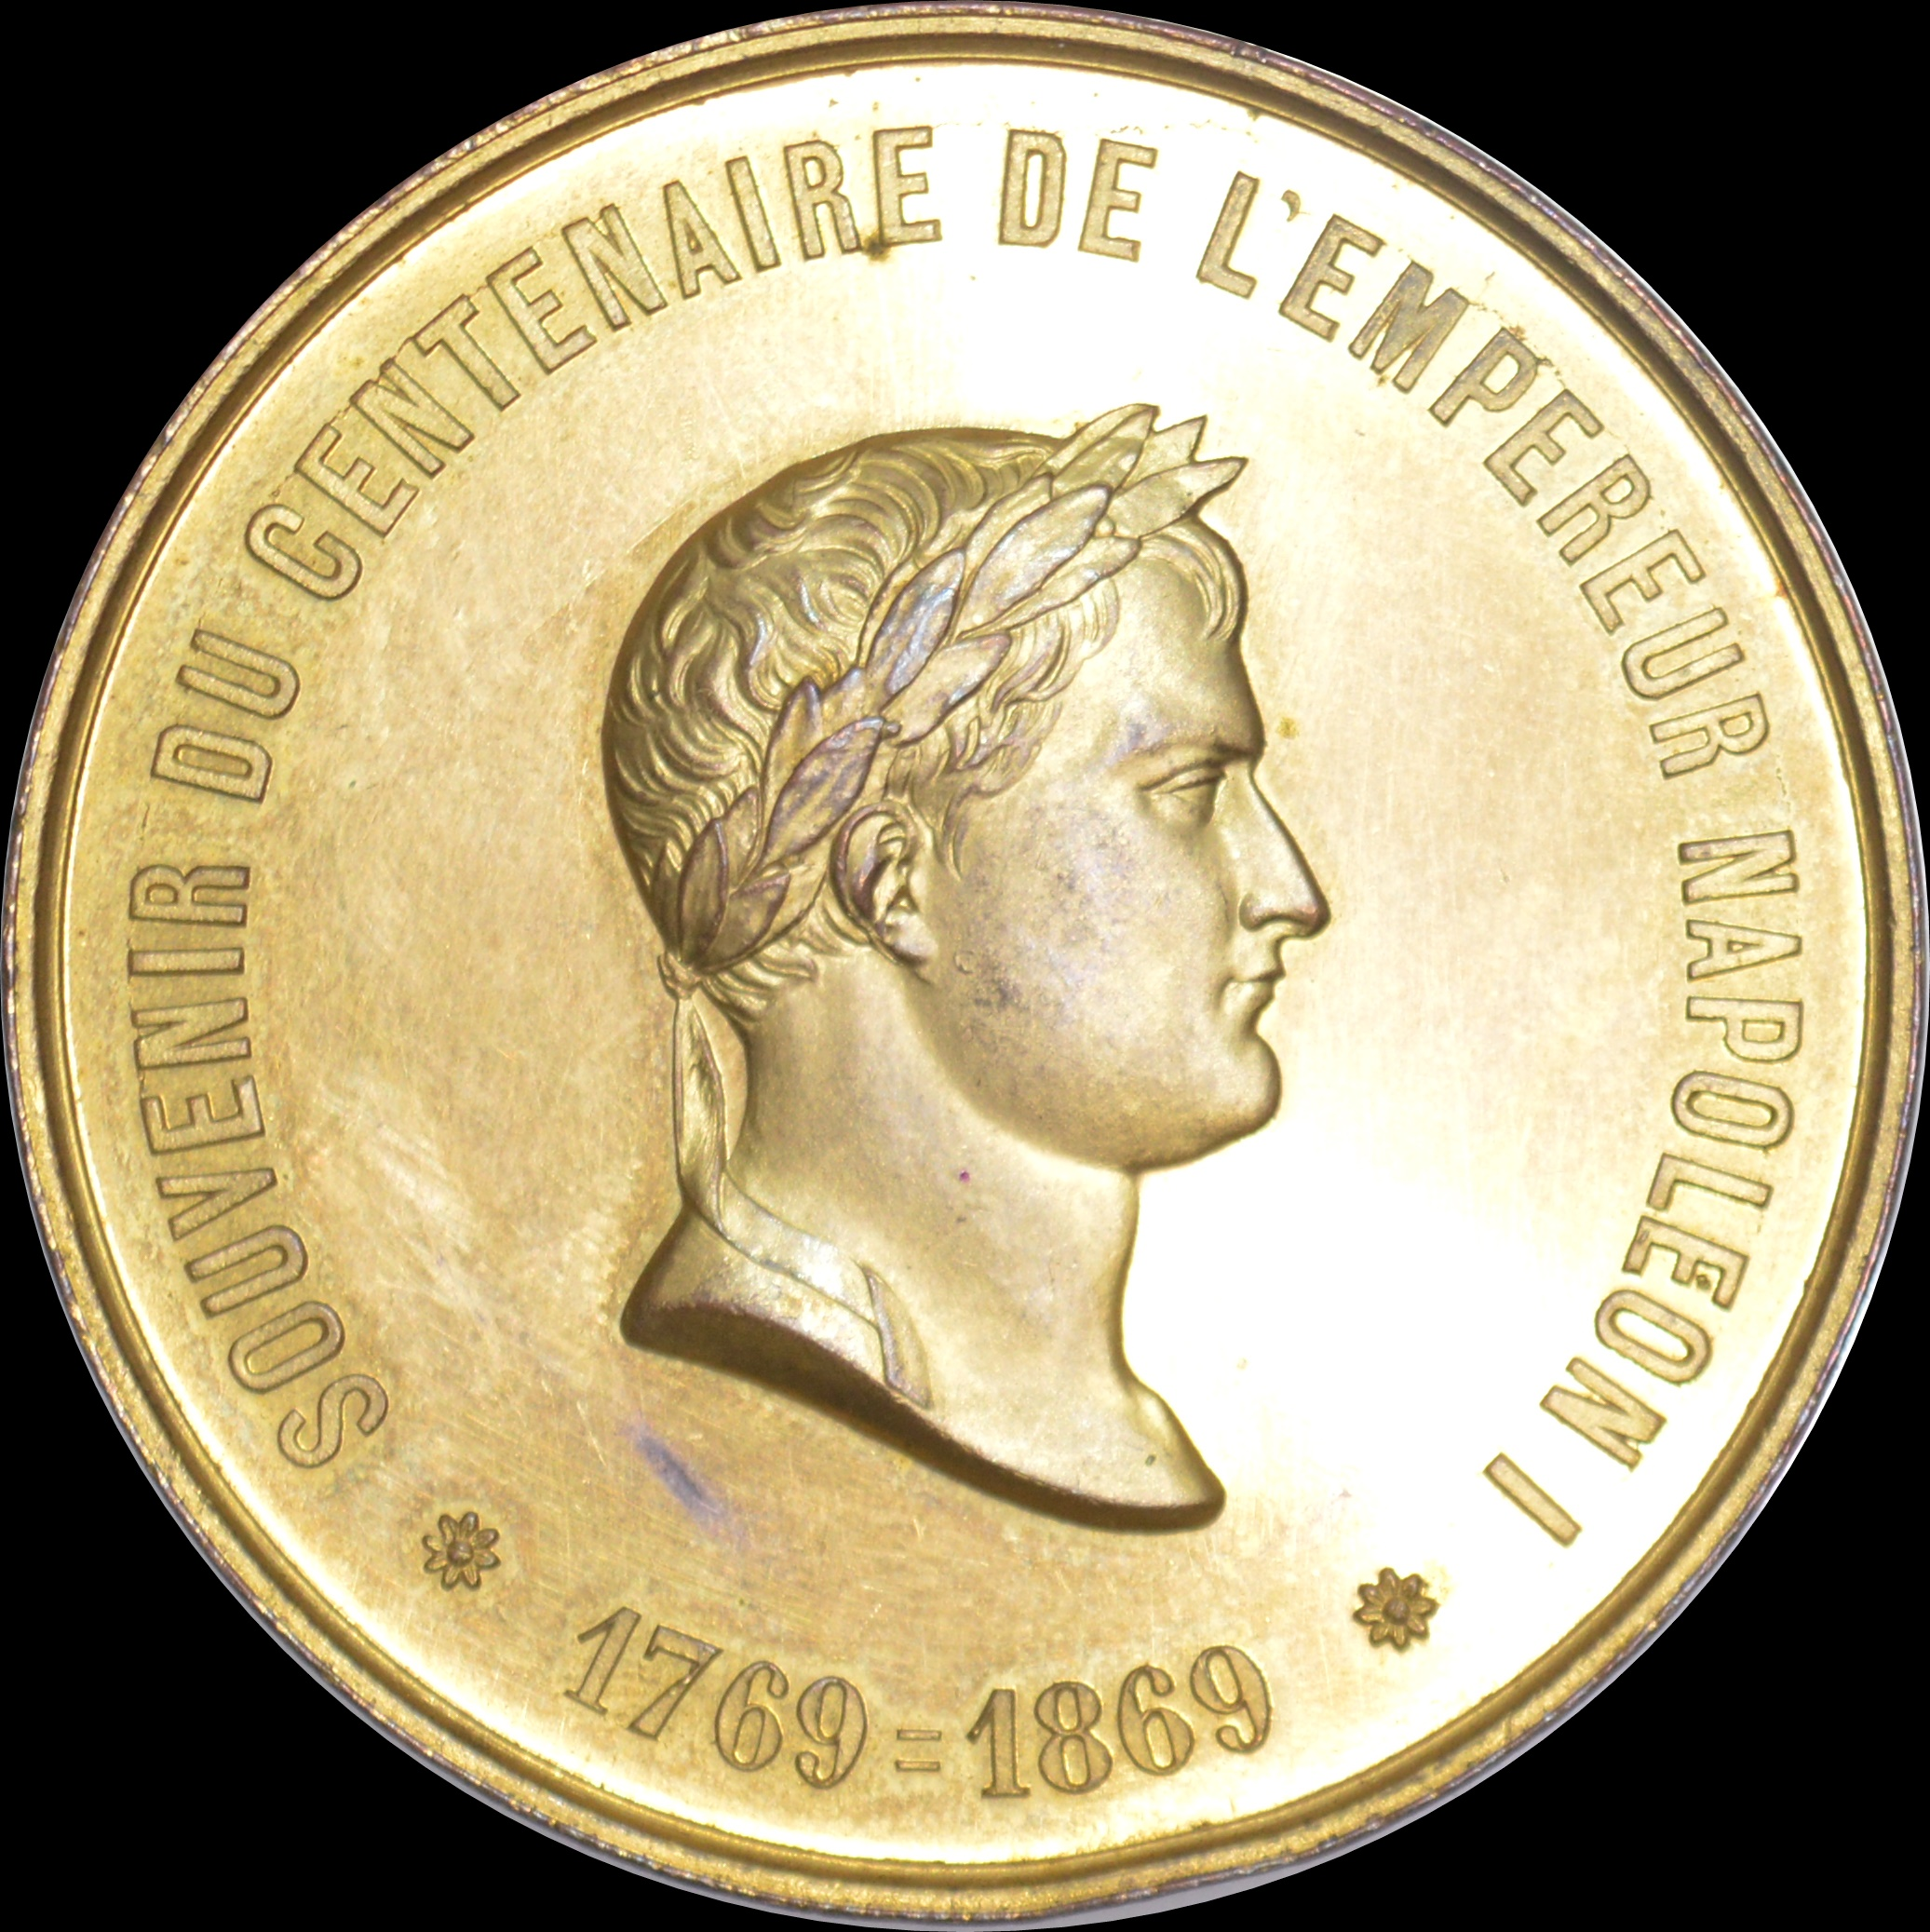 France - 1869 Centenary of the Birth of Napoleon gilt bronze medallion